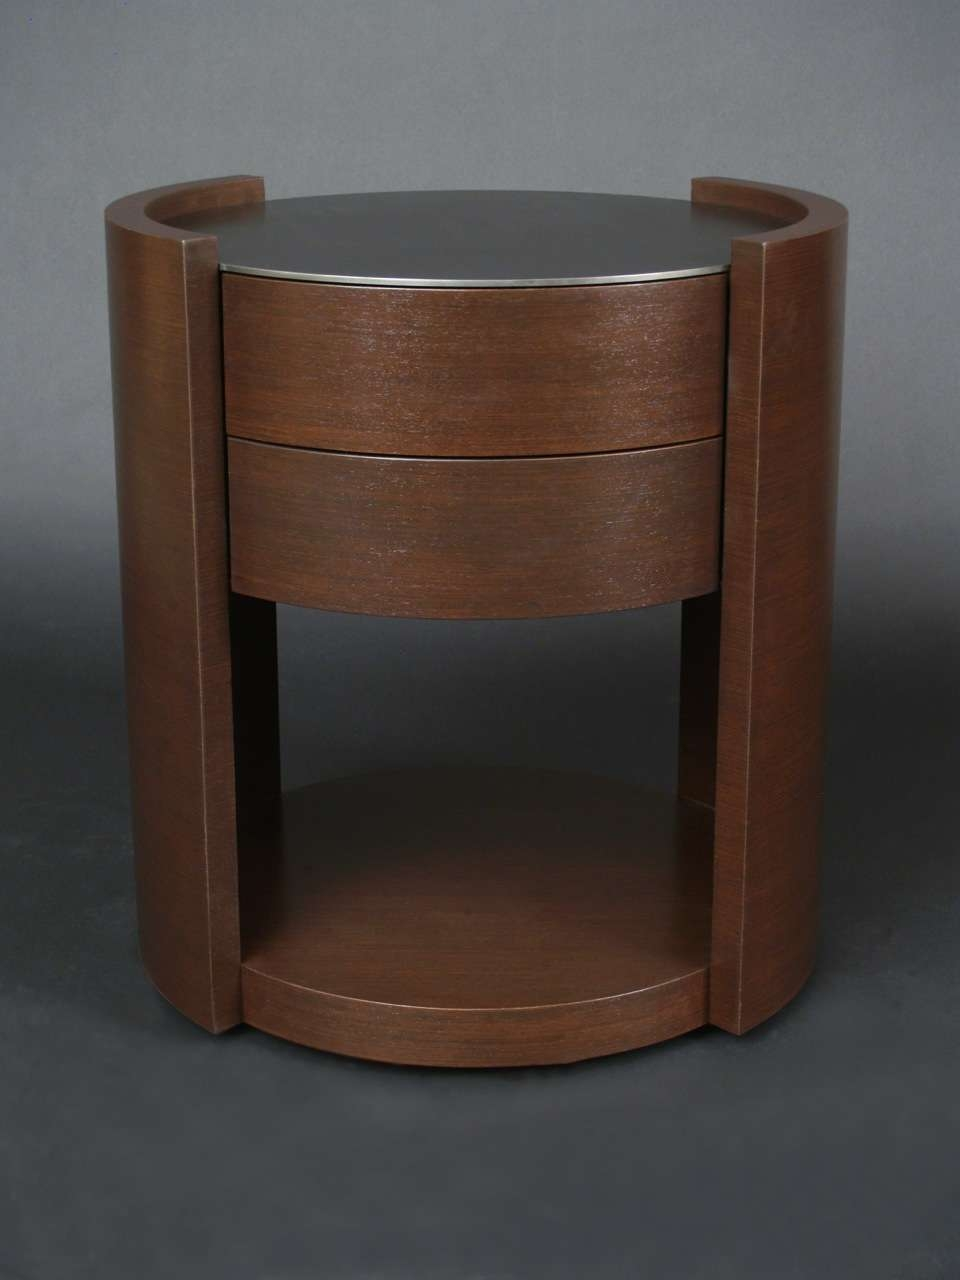 Dream Table Furniture Regarding Famous Round Coffee Tables With Drawer (View 6 of 20)